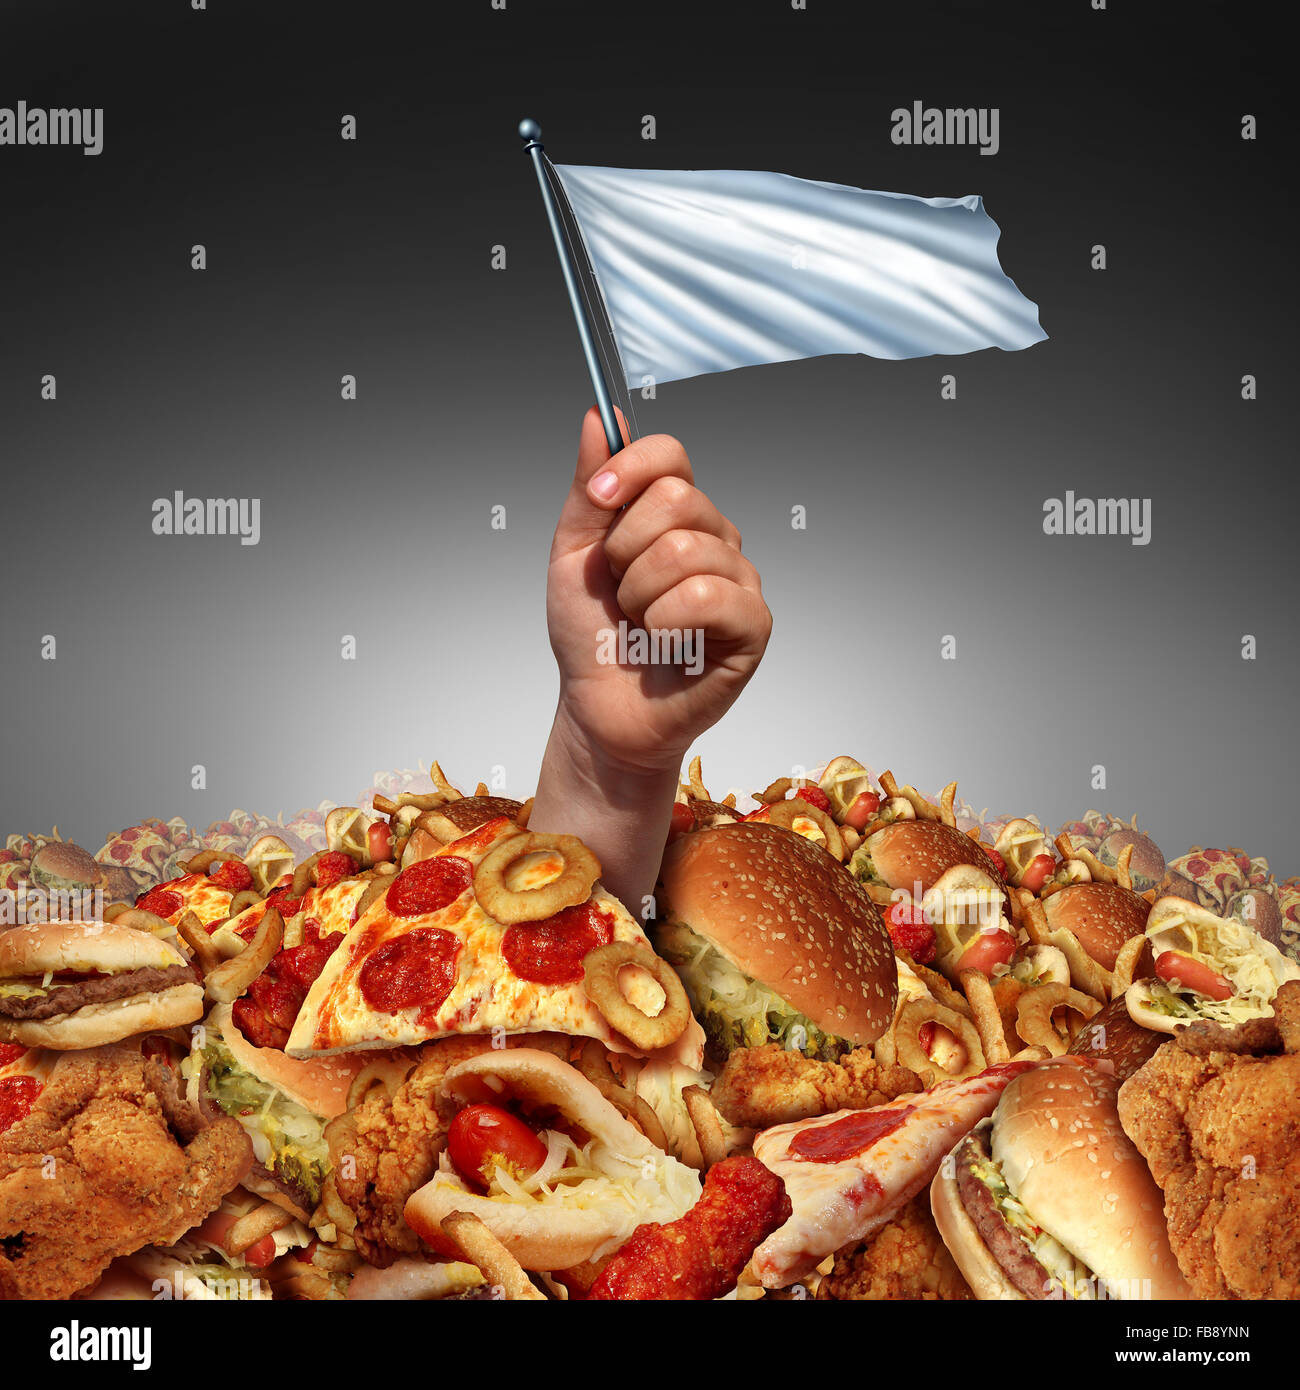 Junk food surrender and giving up fatty food or quitting a high fat lifestyle and dieting help concept as a hand - Stock Image